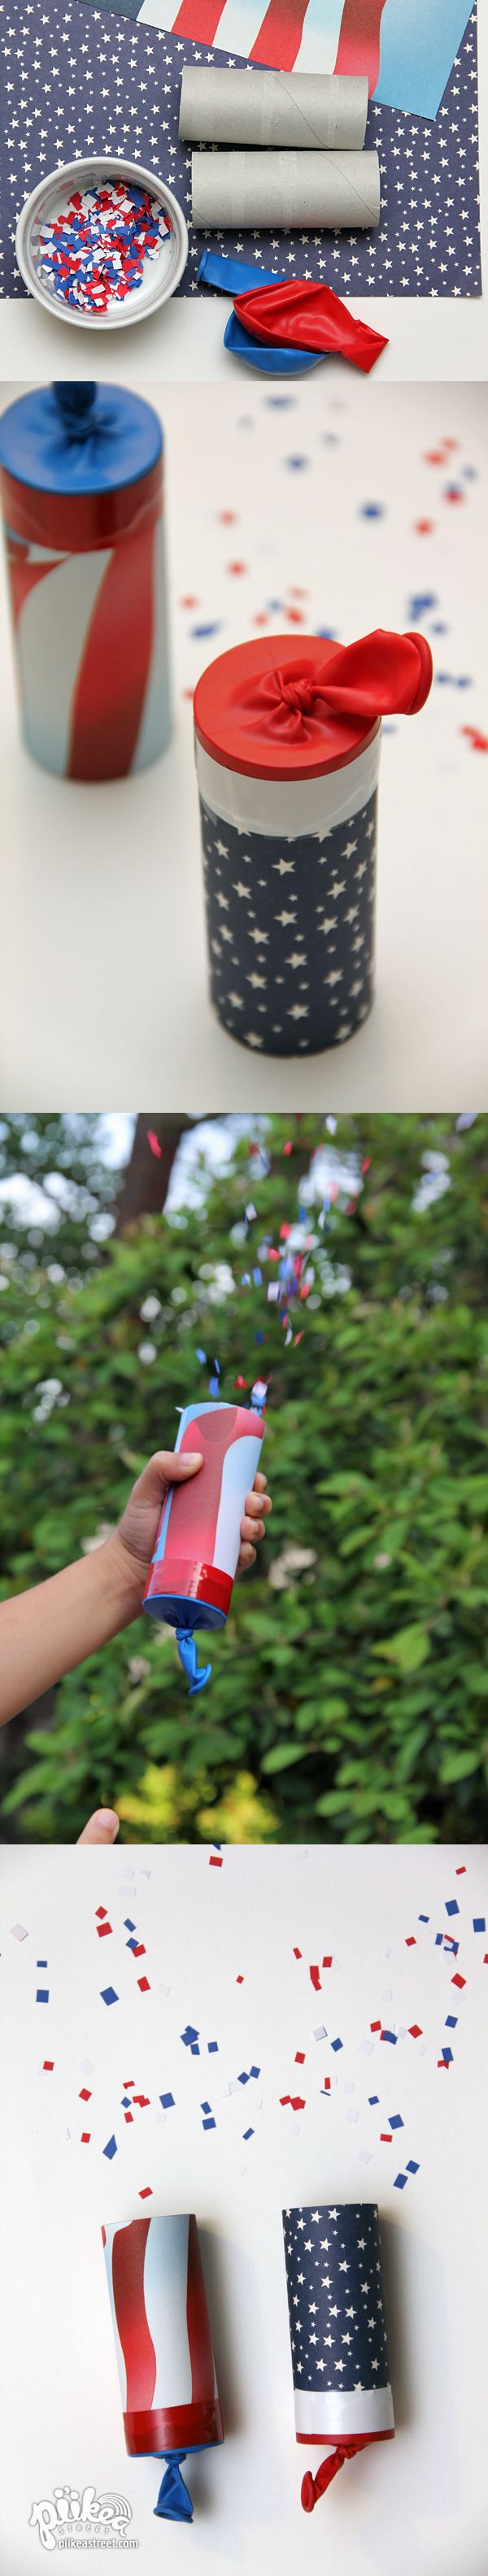 Make a few Confetti Launchers for the 4th of July!